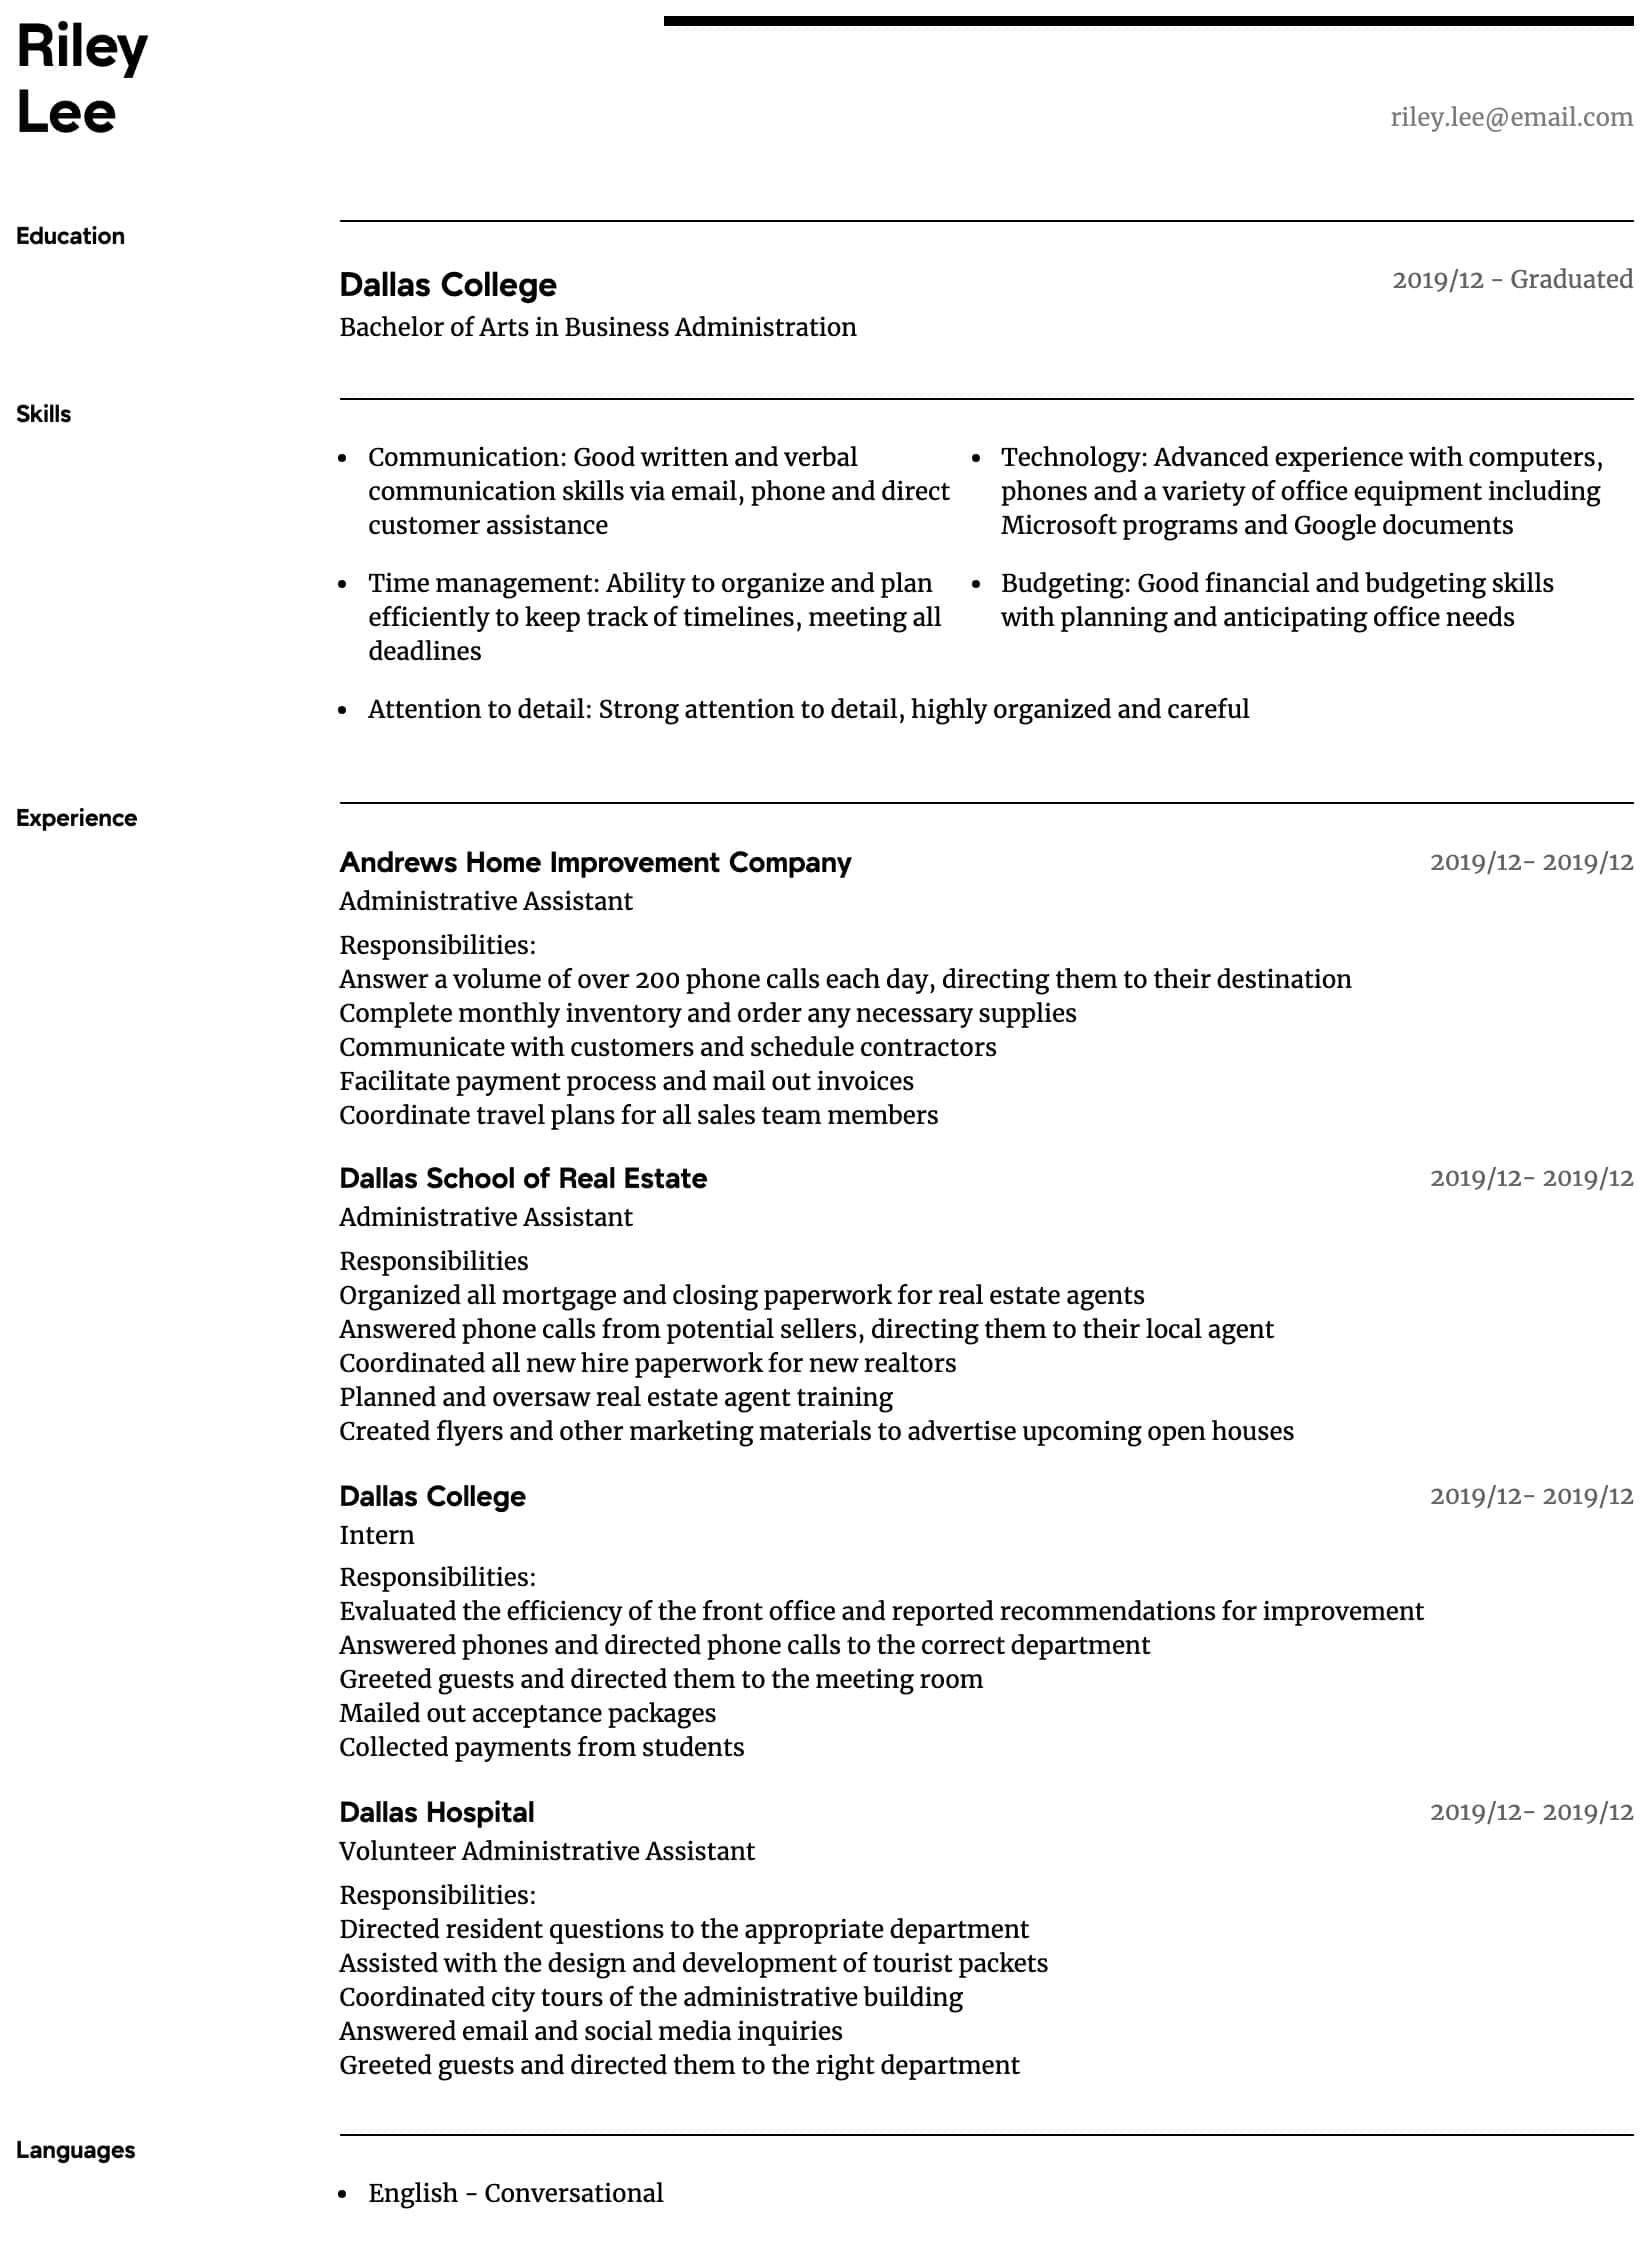 administrative assistant resume samples all experience levels sample intermediate help Resume Material Expeditor Resume